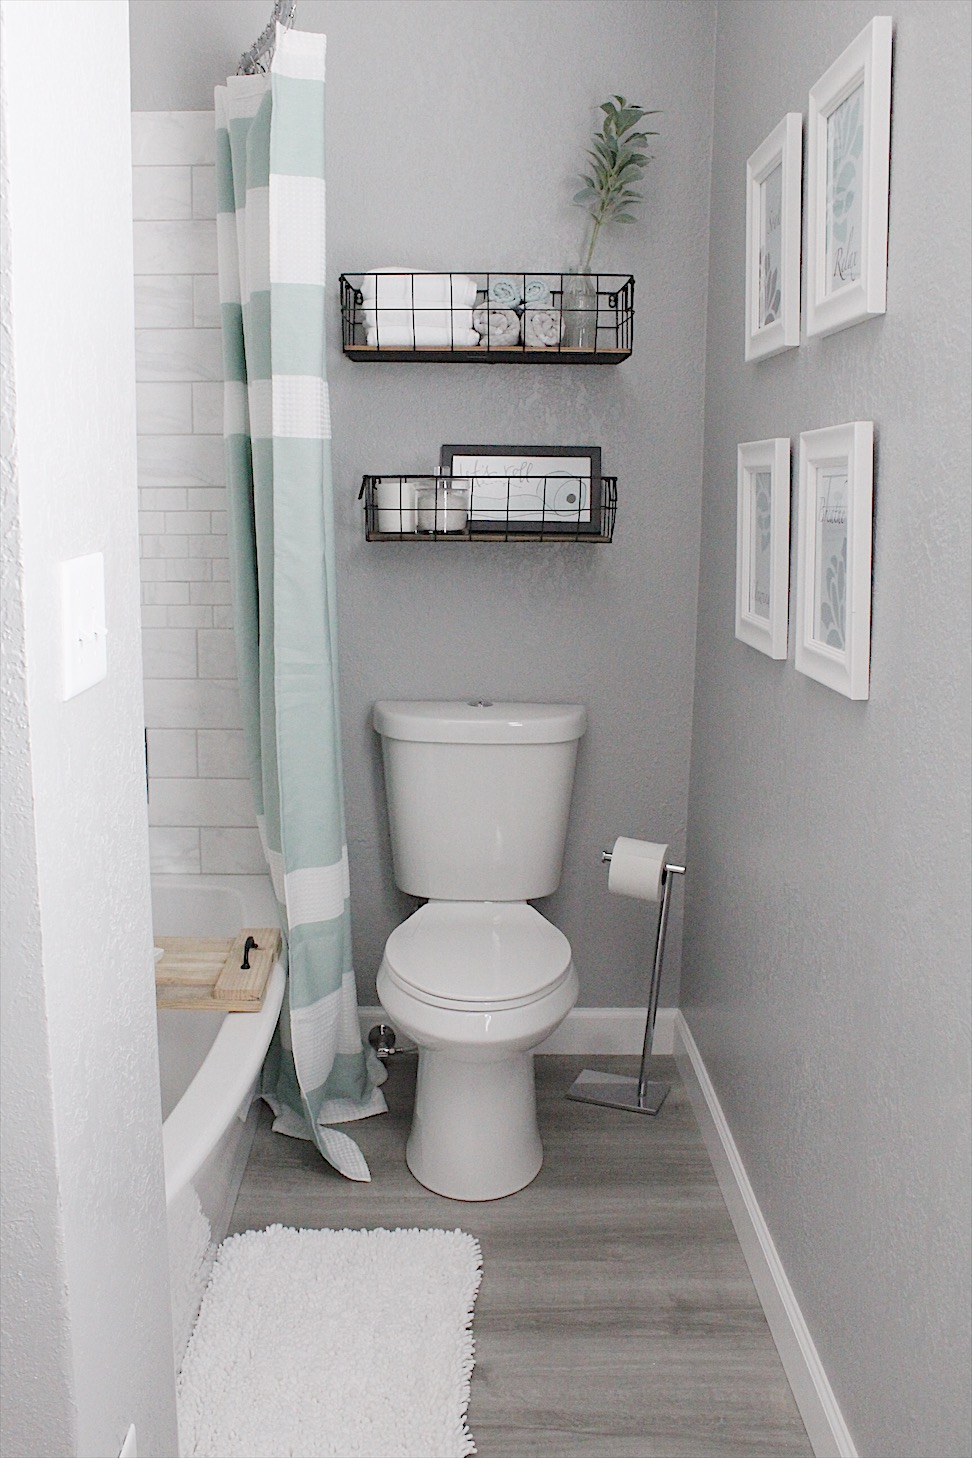 gorgeous bathroom remodel - small space styling